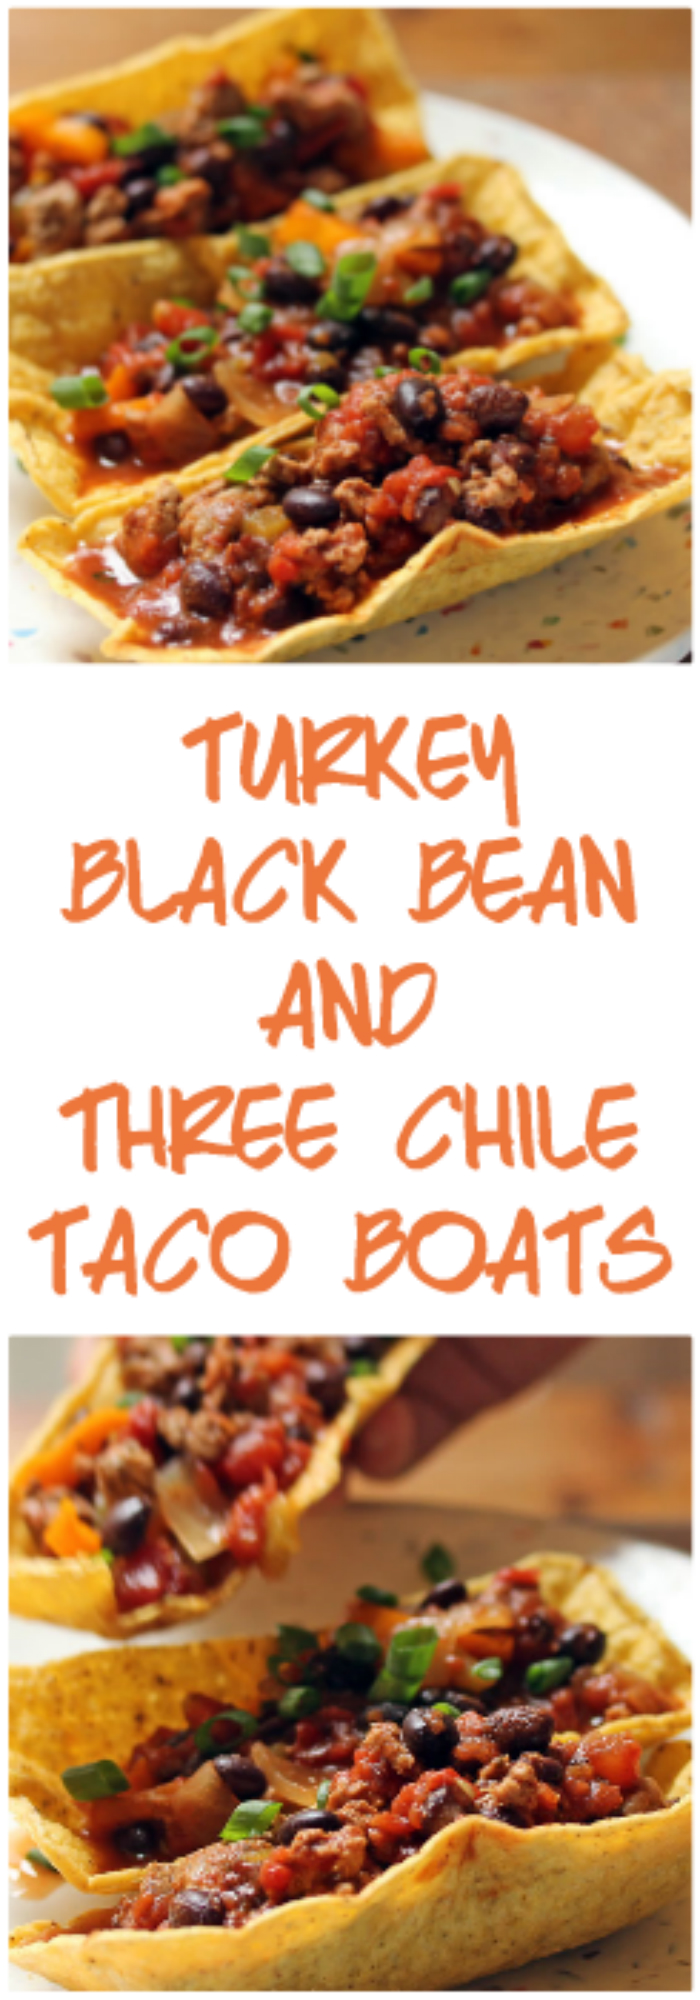 Look for these gluten-free taco boats and fill them with turkey, black beans, and a three-chile zing! From The Perfect Pantry.